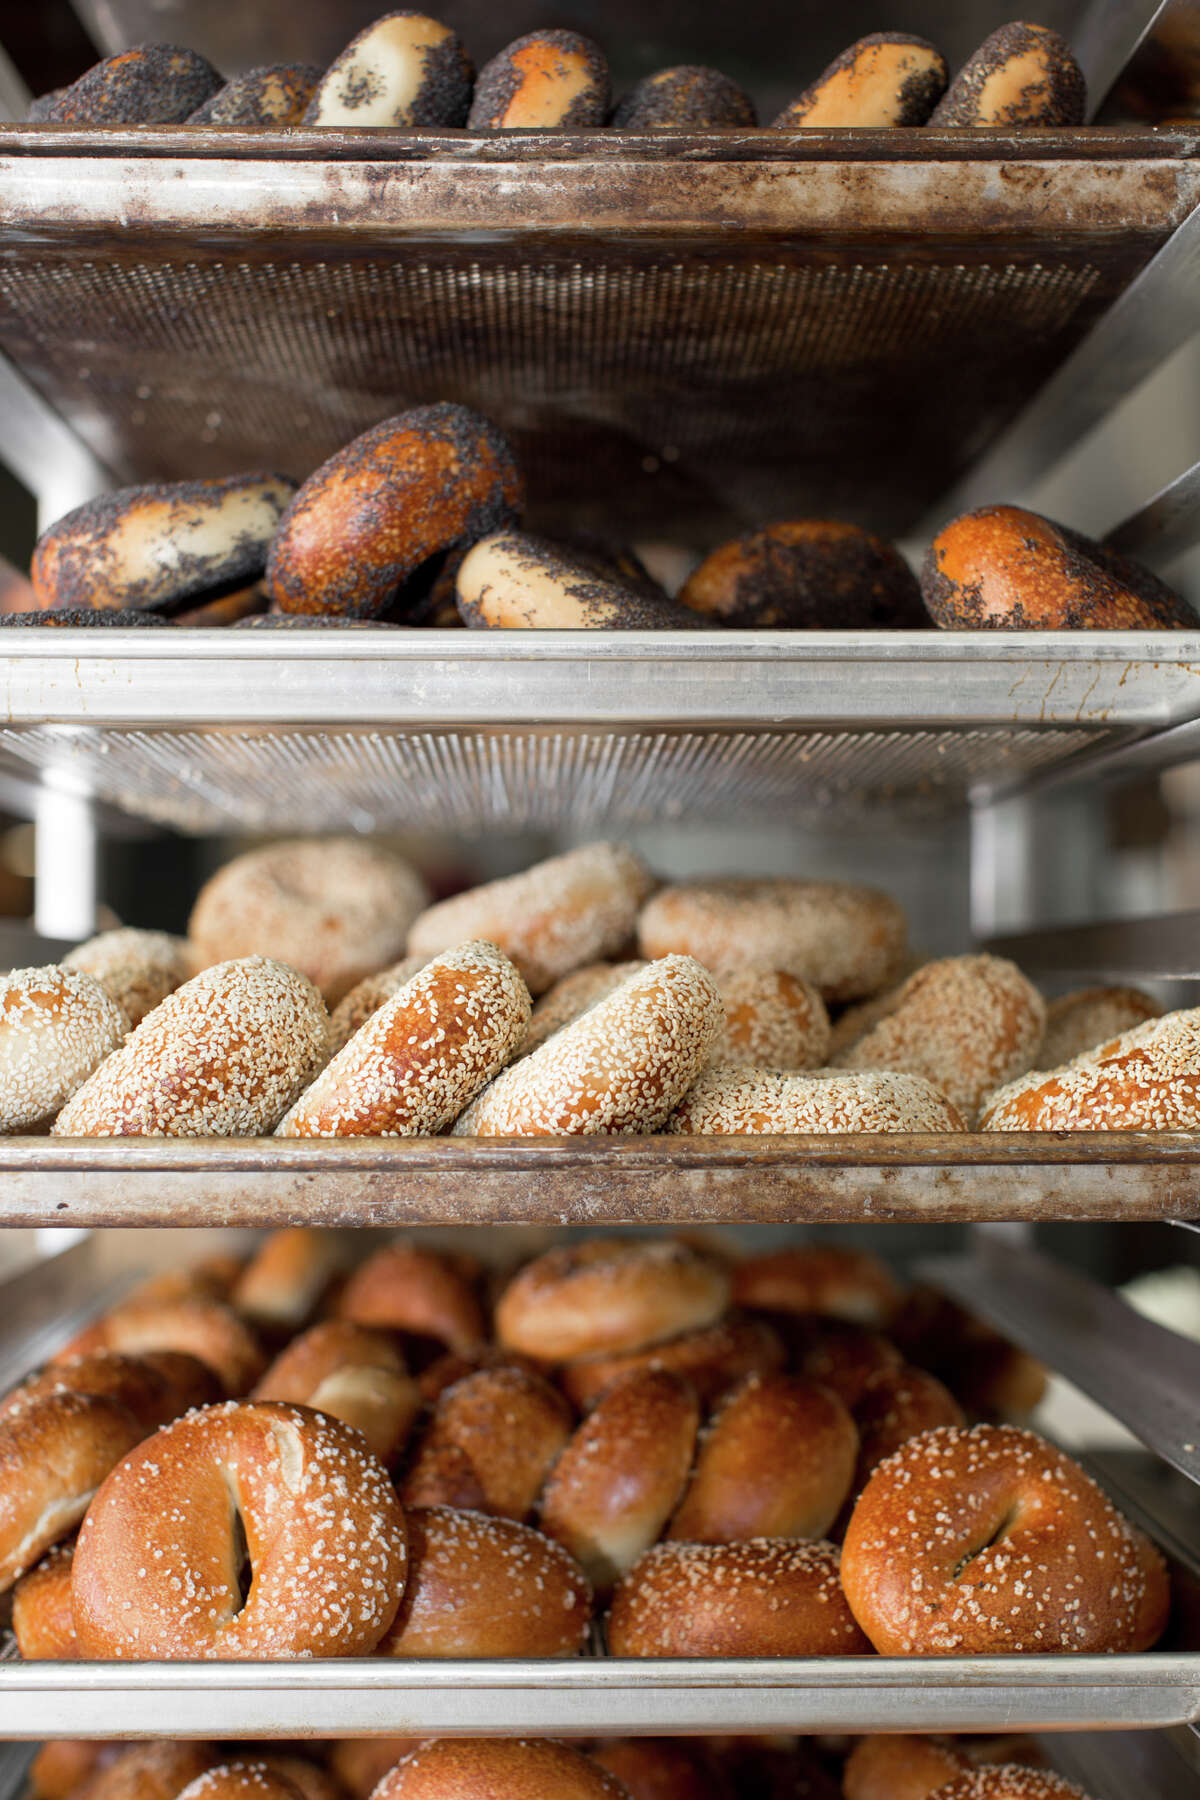 Wise Sons bagels will be among the baked goods sold at Whole Foods soon. Photo via Whole Foods.